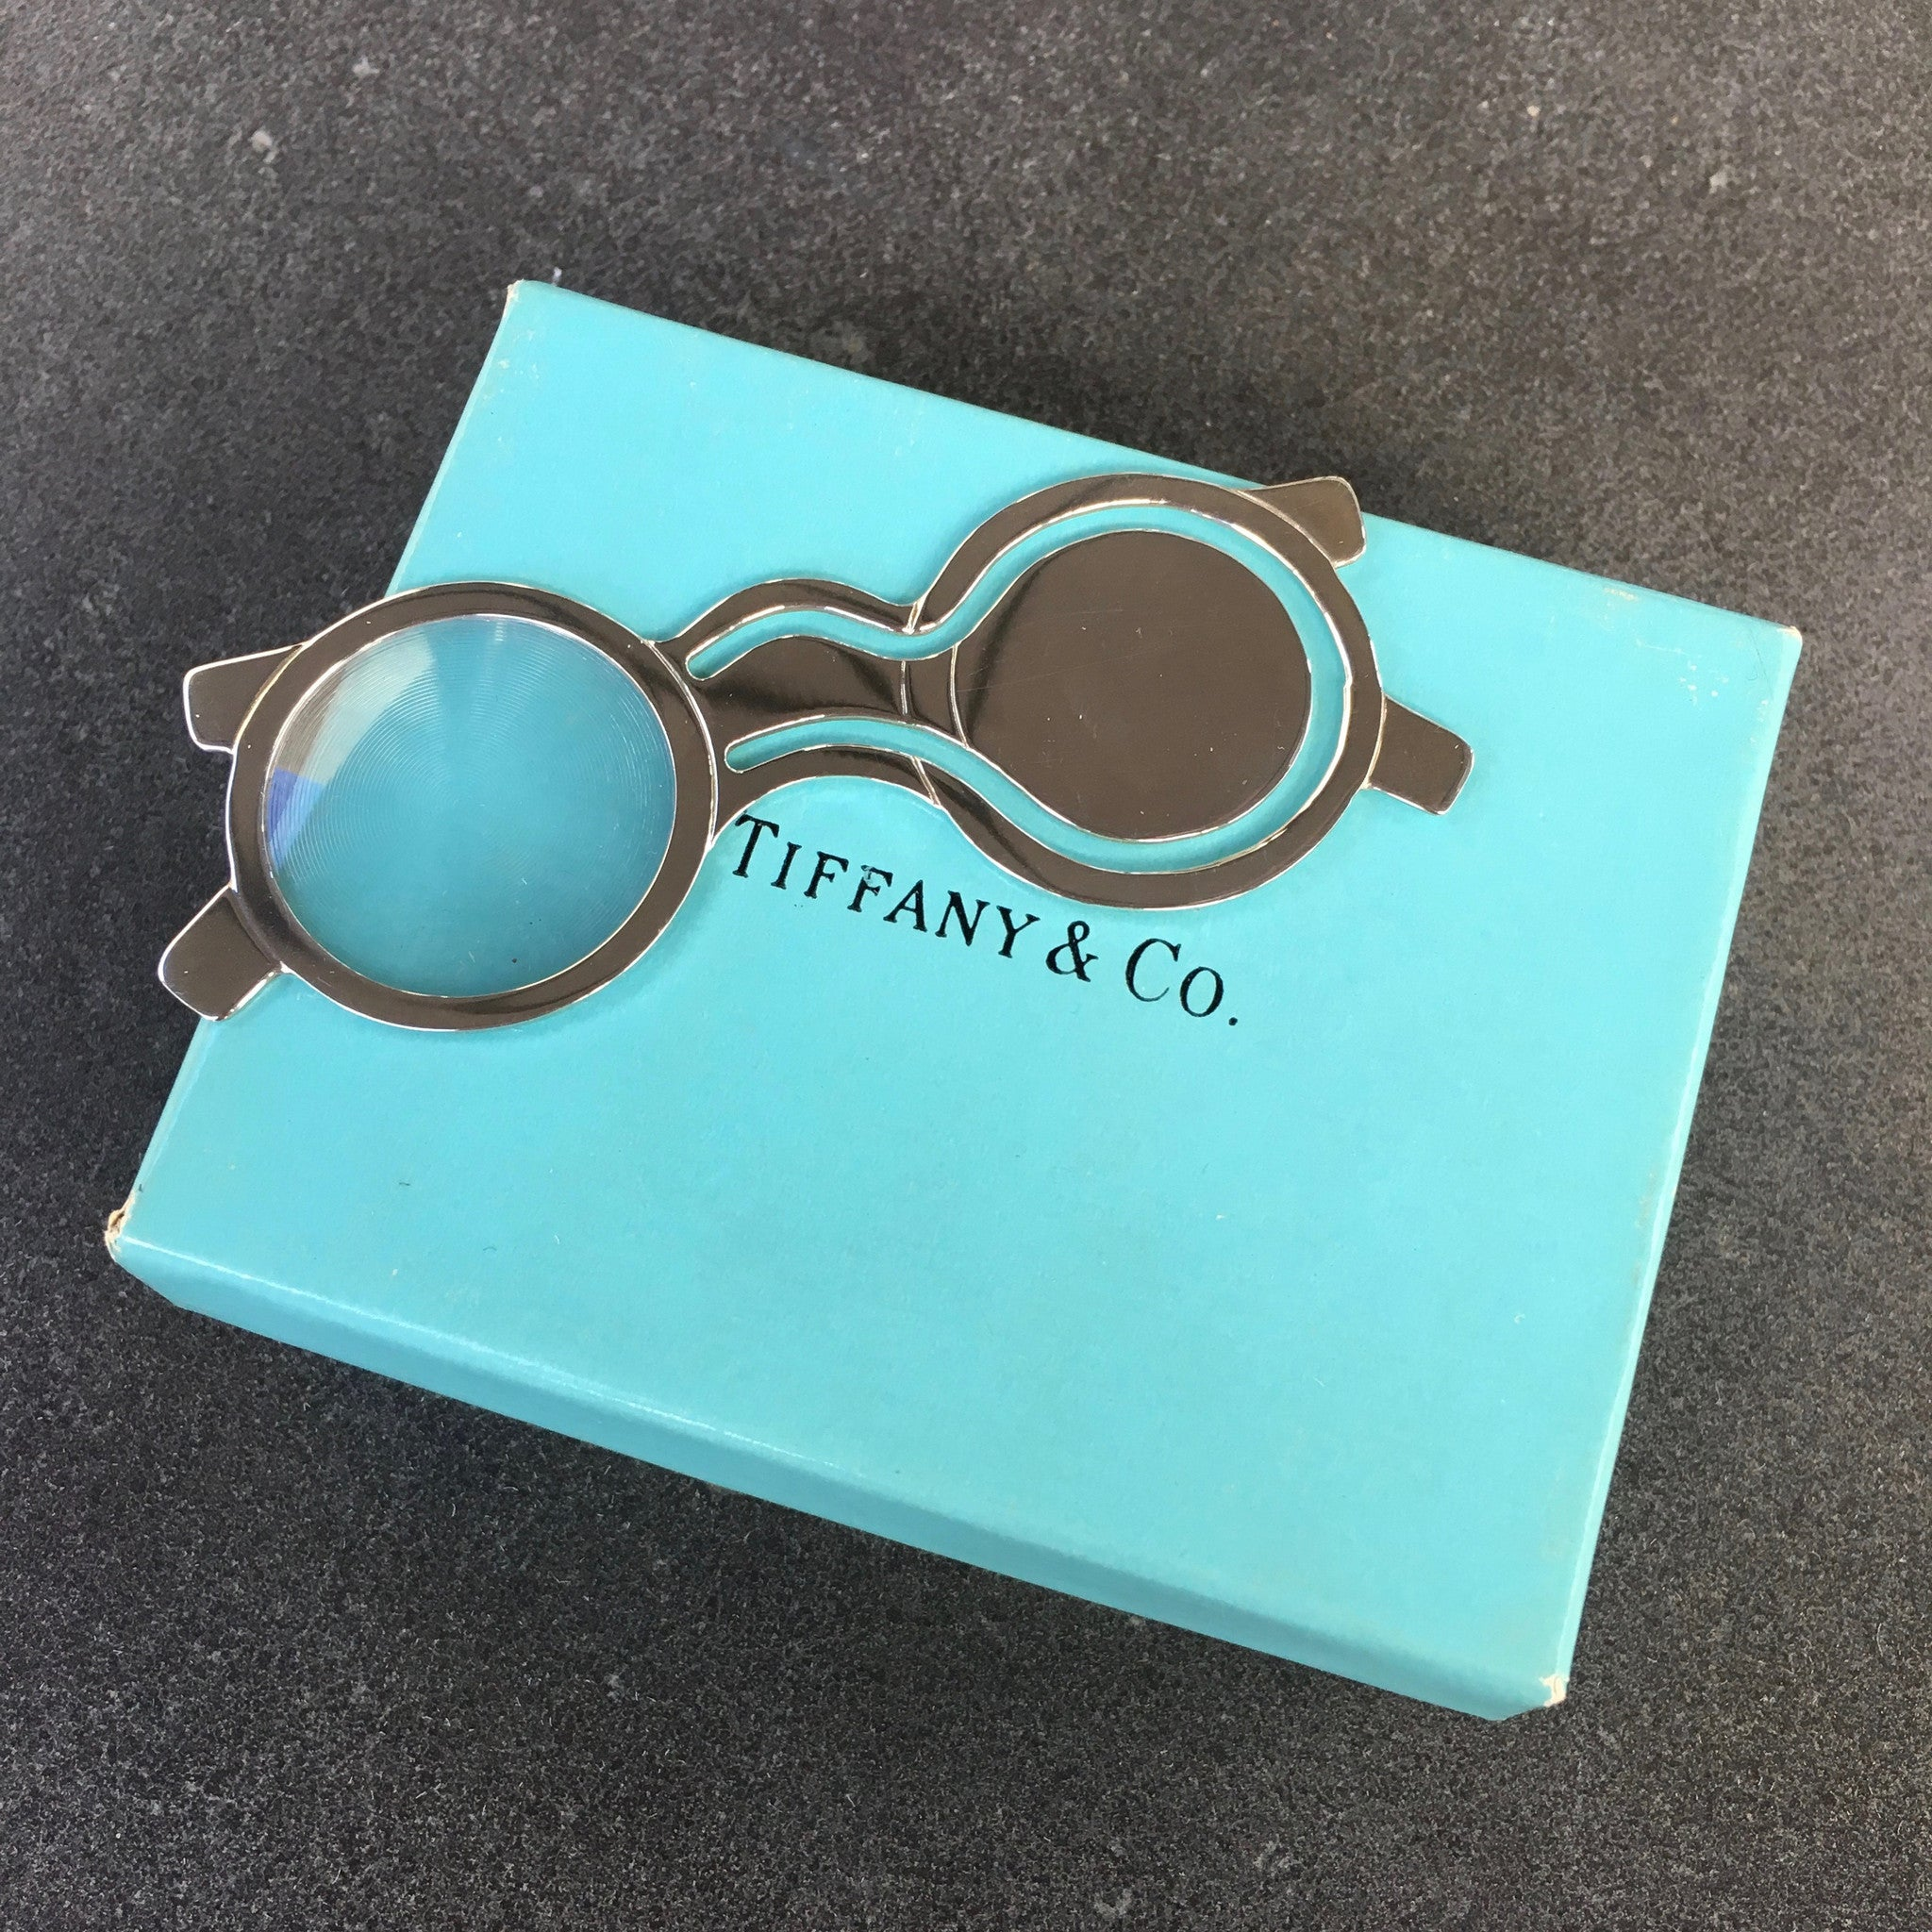 Tiffany & Co. Sterling Silver .925 Spectacles Eyeglasses Bookmark - Hashtag Watch Company